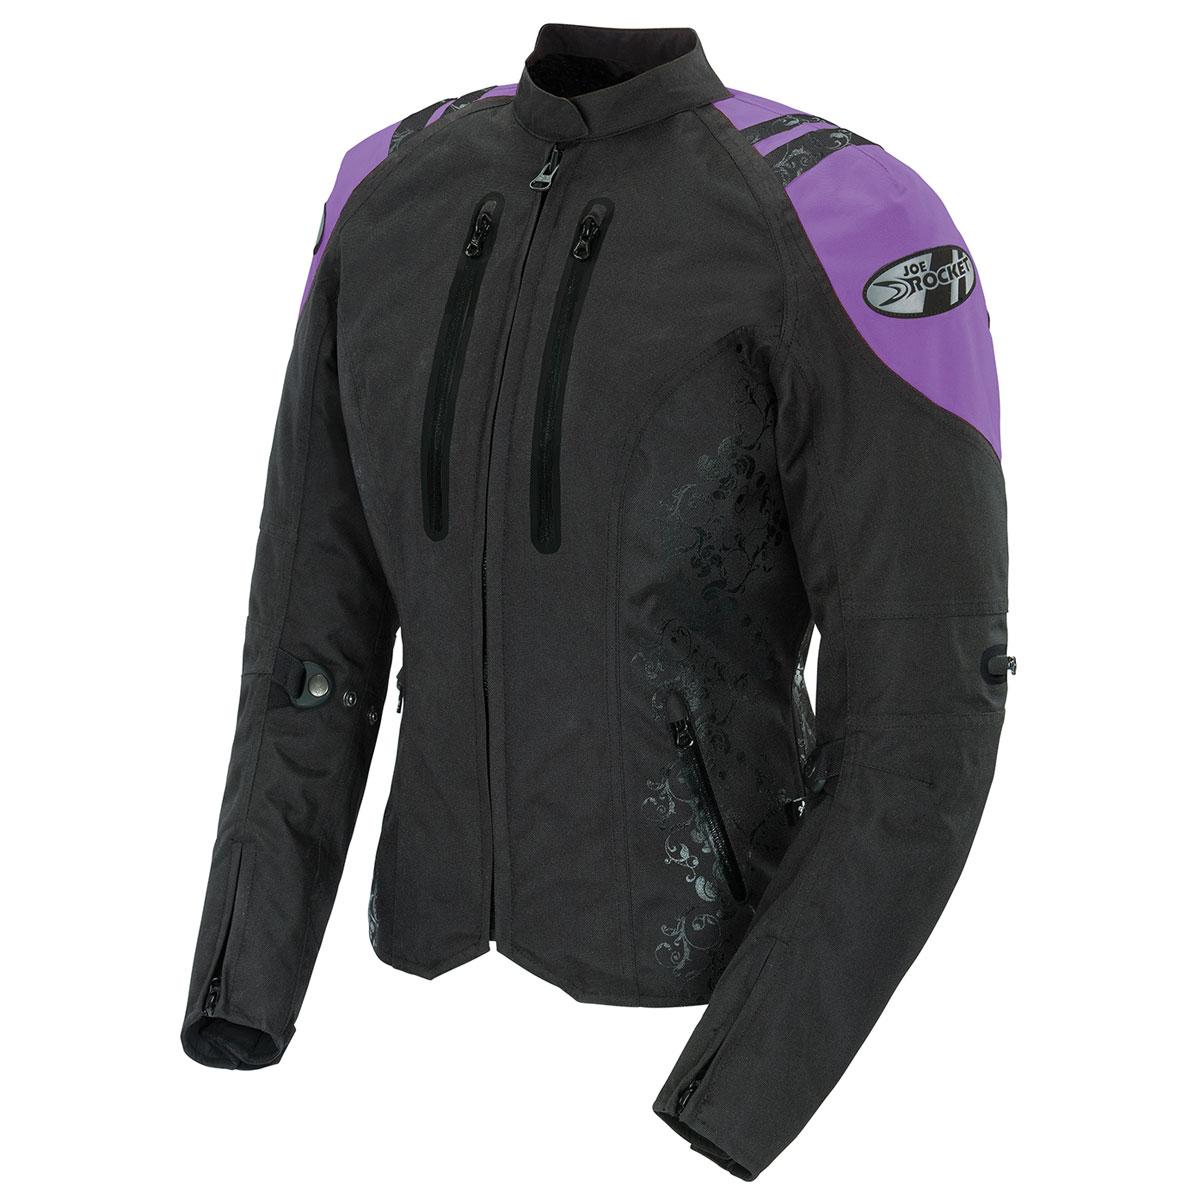 Joe Rocket Women's Atomic 4.0 Waterproof Purple/Black Jacket